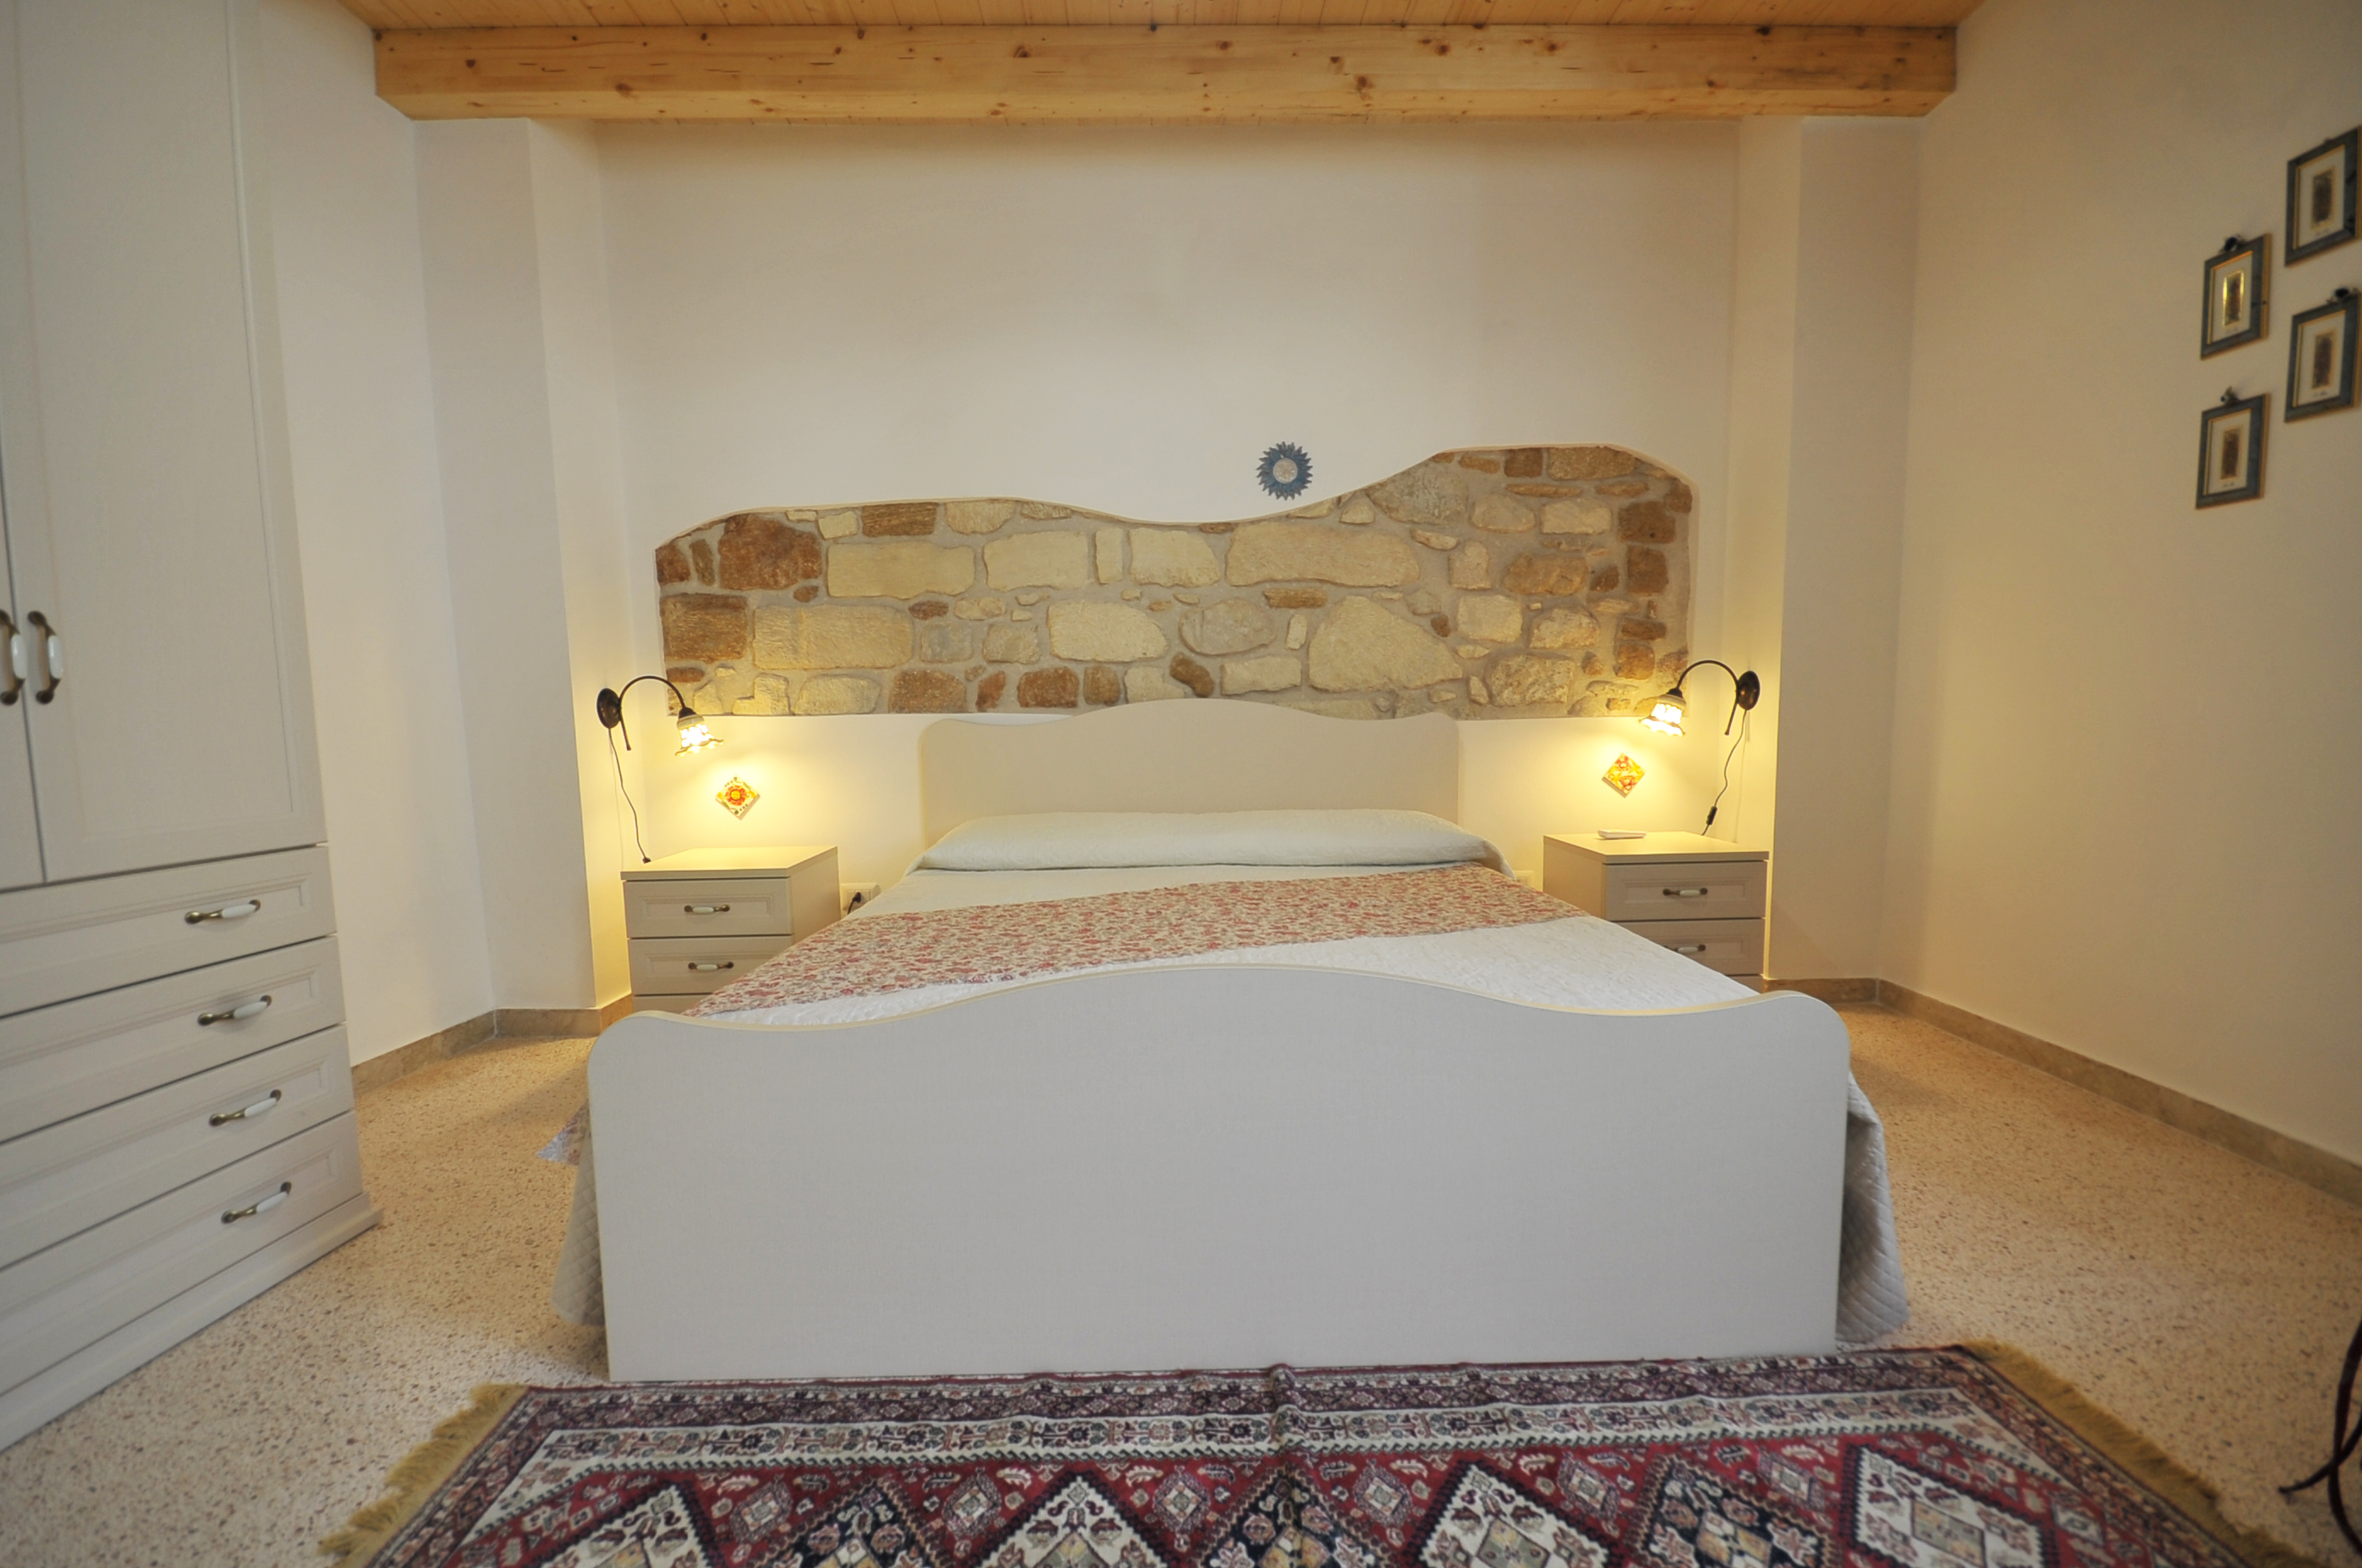 Artemide_camera_familiare_B&B_Avola_siracusa_bed_and_breakfast_4